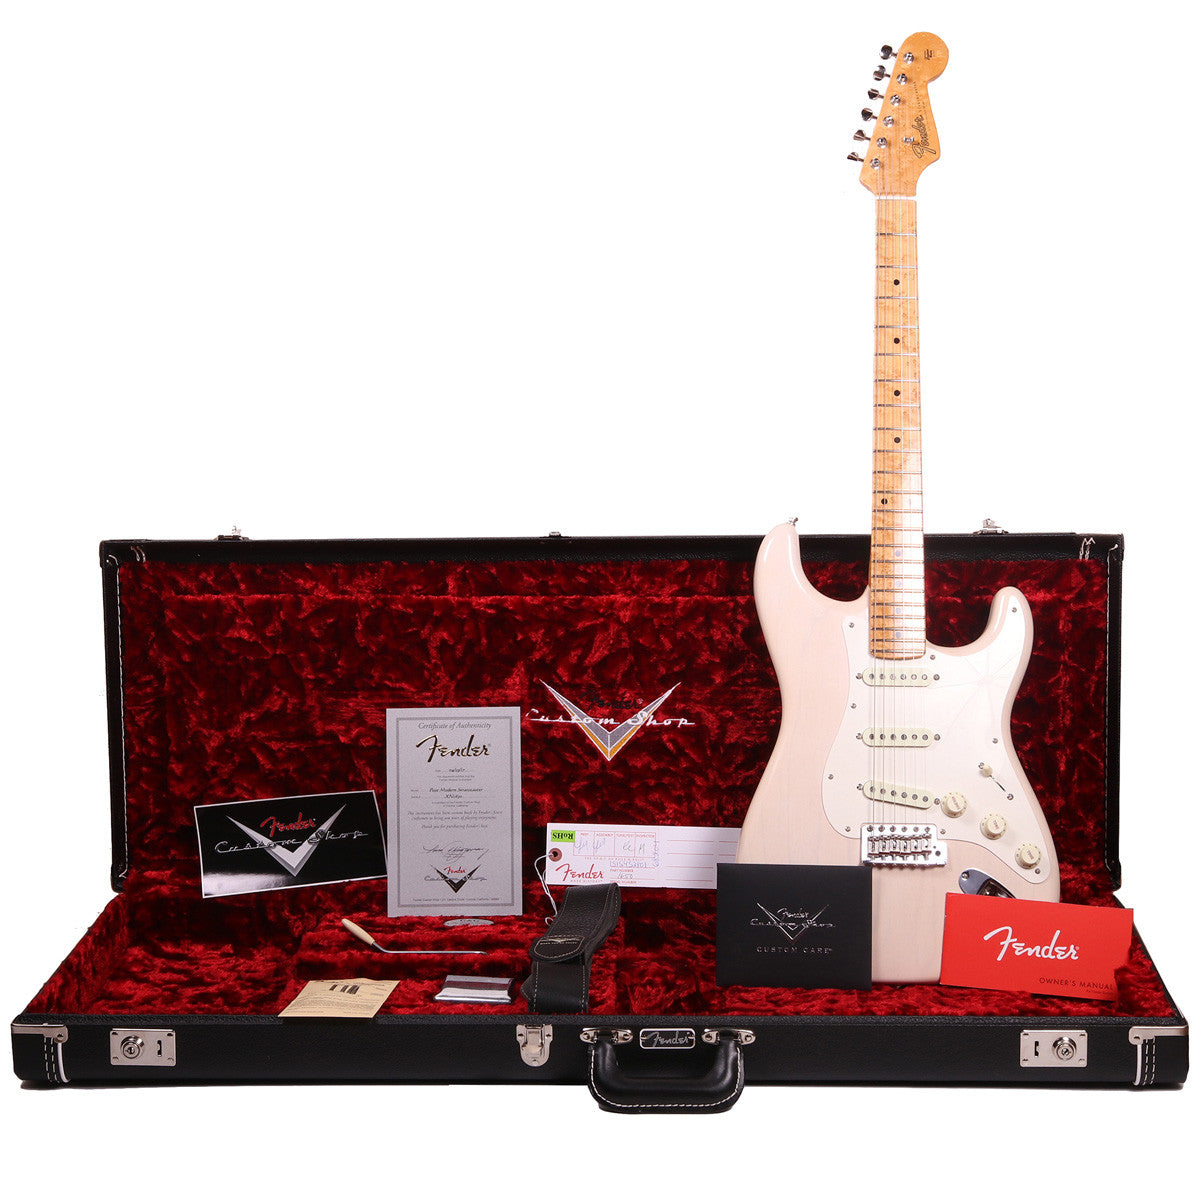 Fender Custom Shop Postmodern Stratocaster - Lush Closet Classic Aged White Blonde - SALE PRICE | Lucky Fret Music Co.